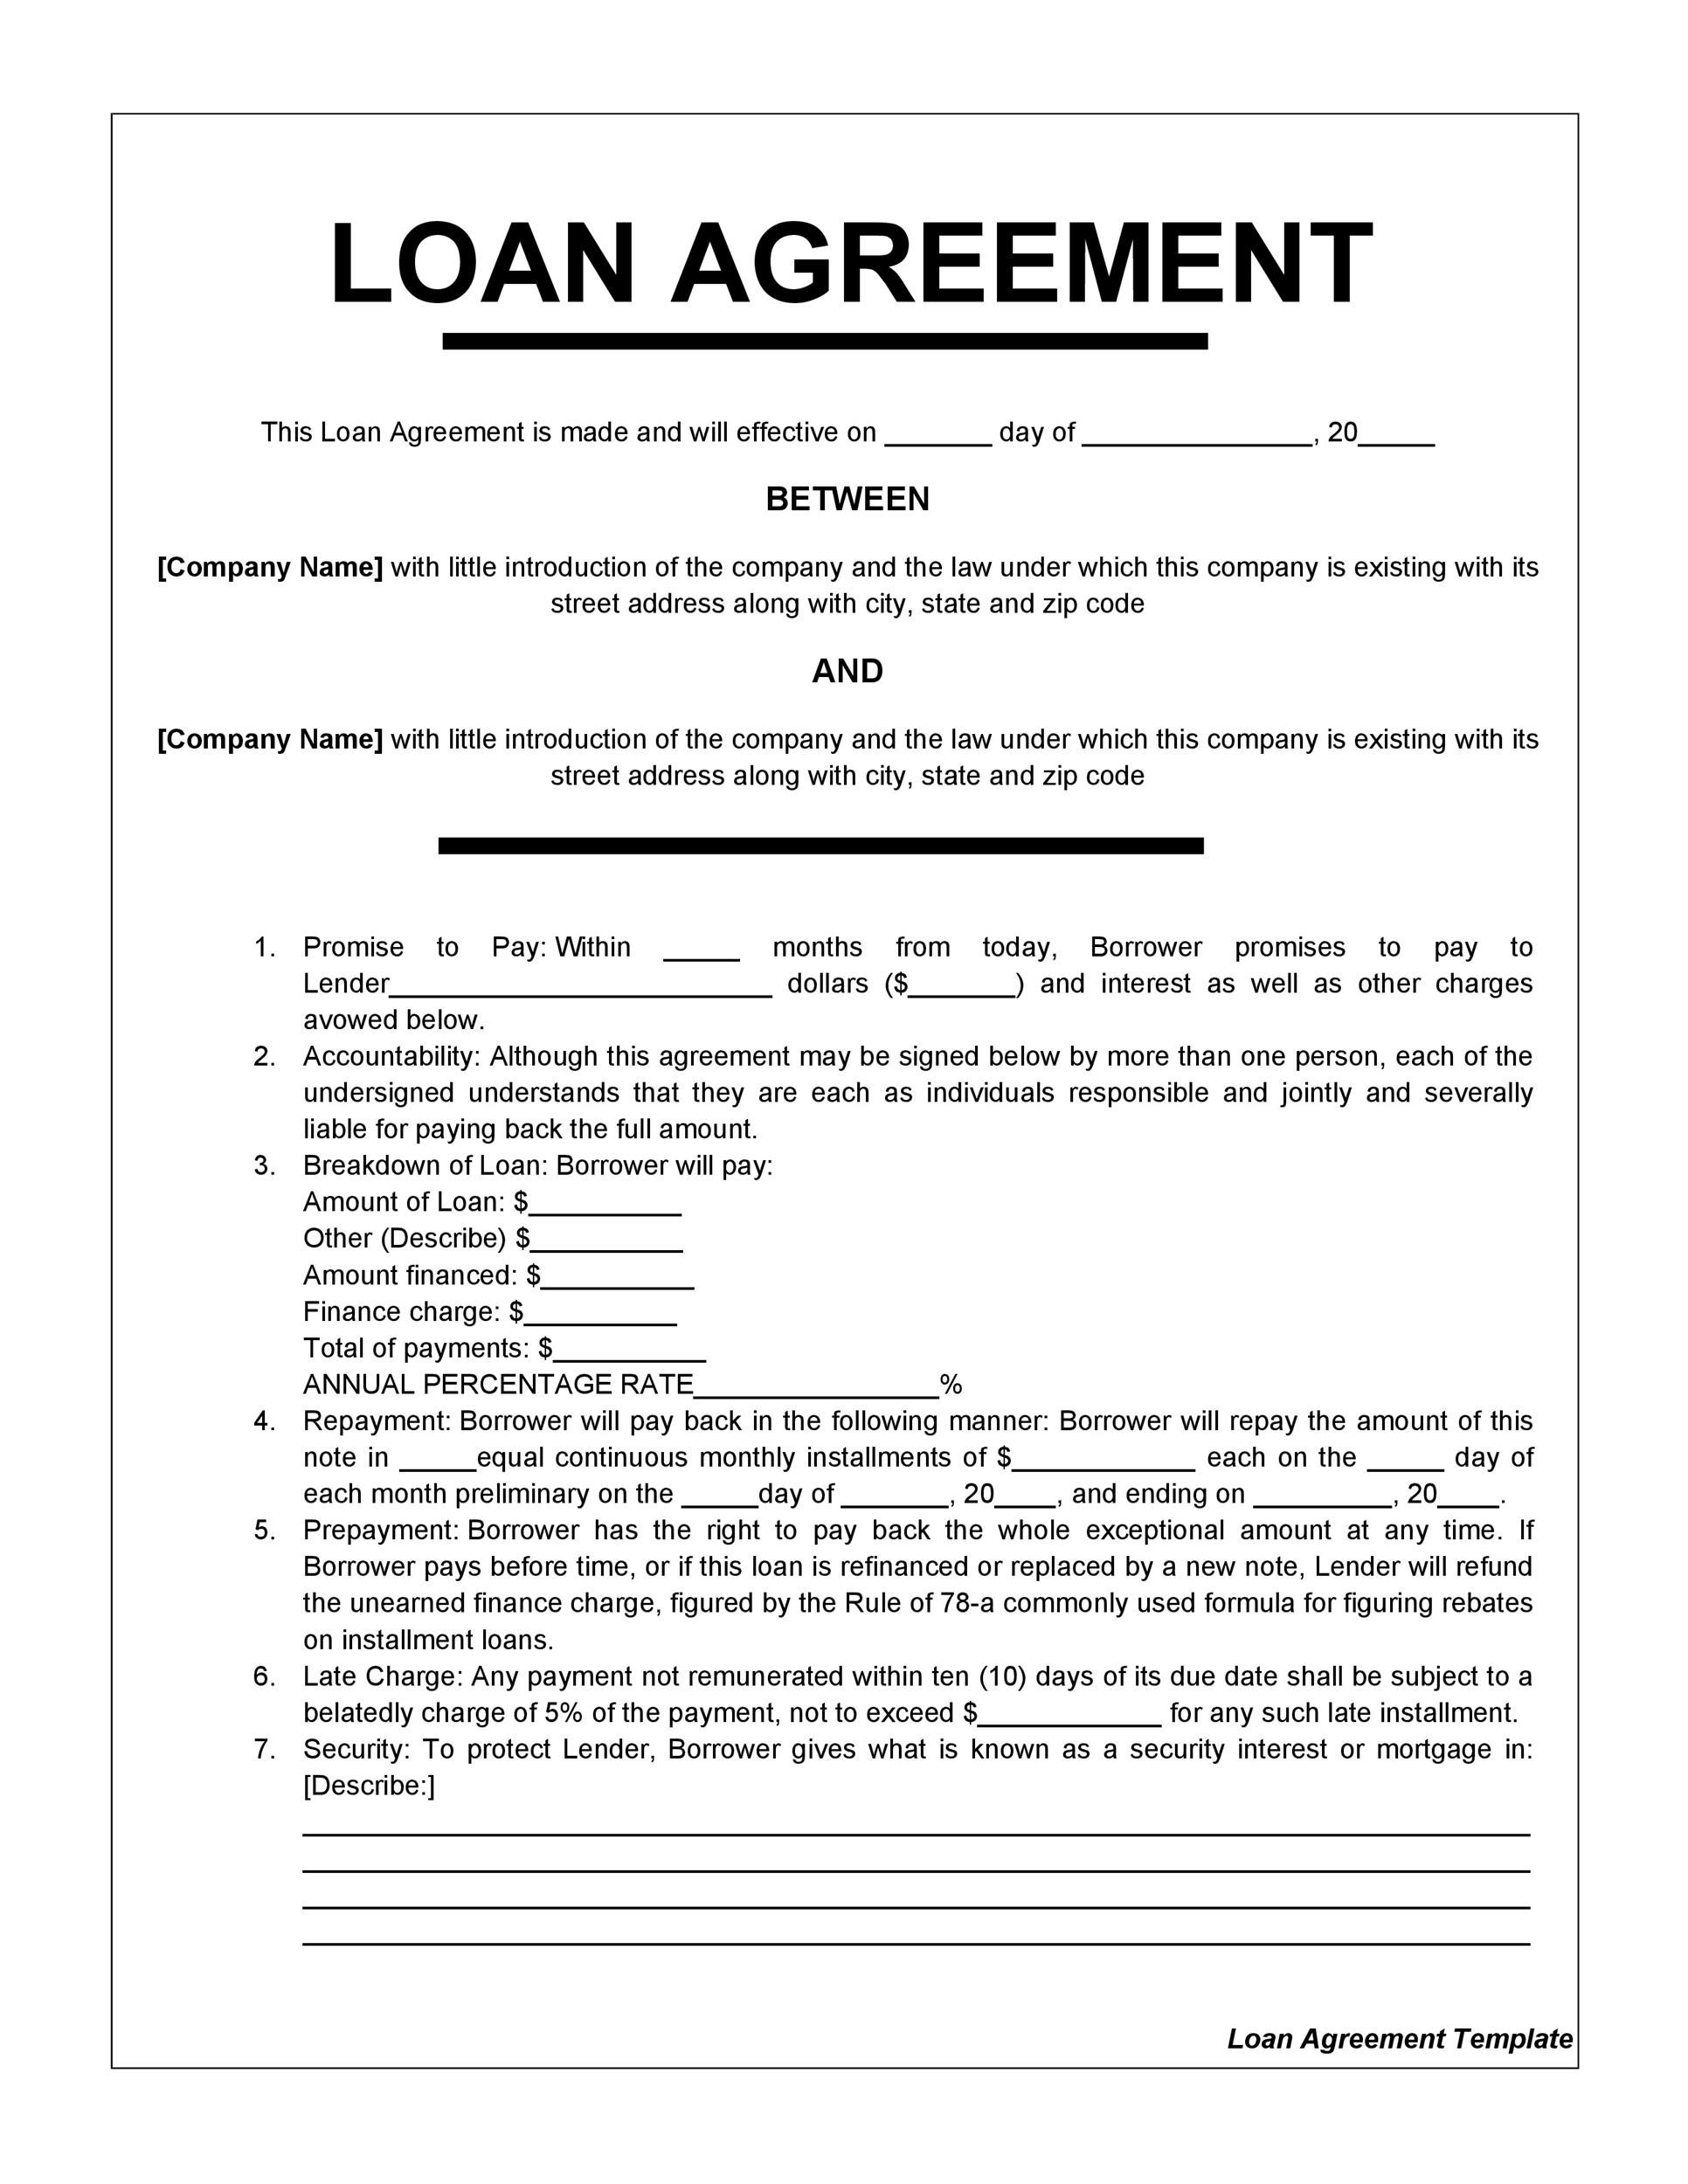 Free Loan Agreement Template 07  Free Loan Agreement